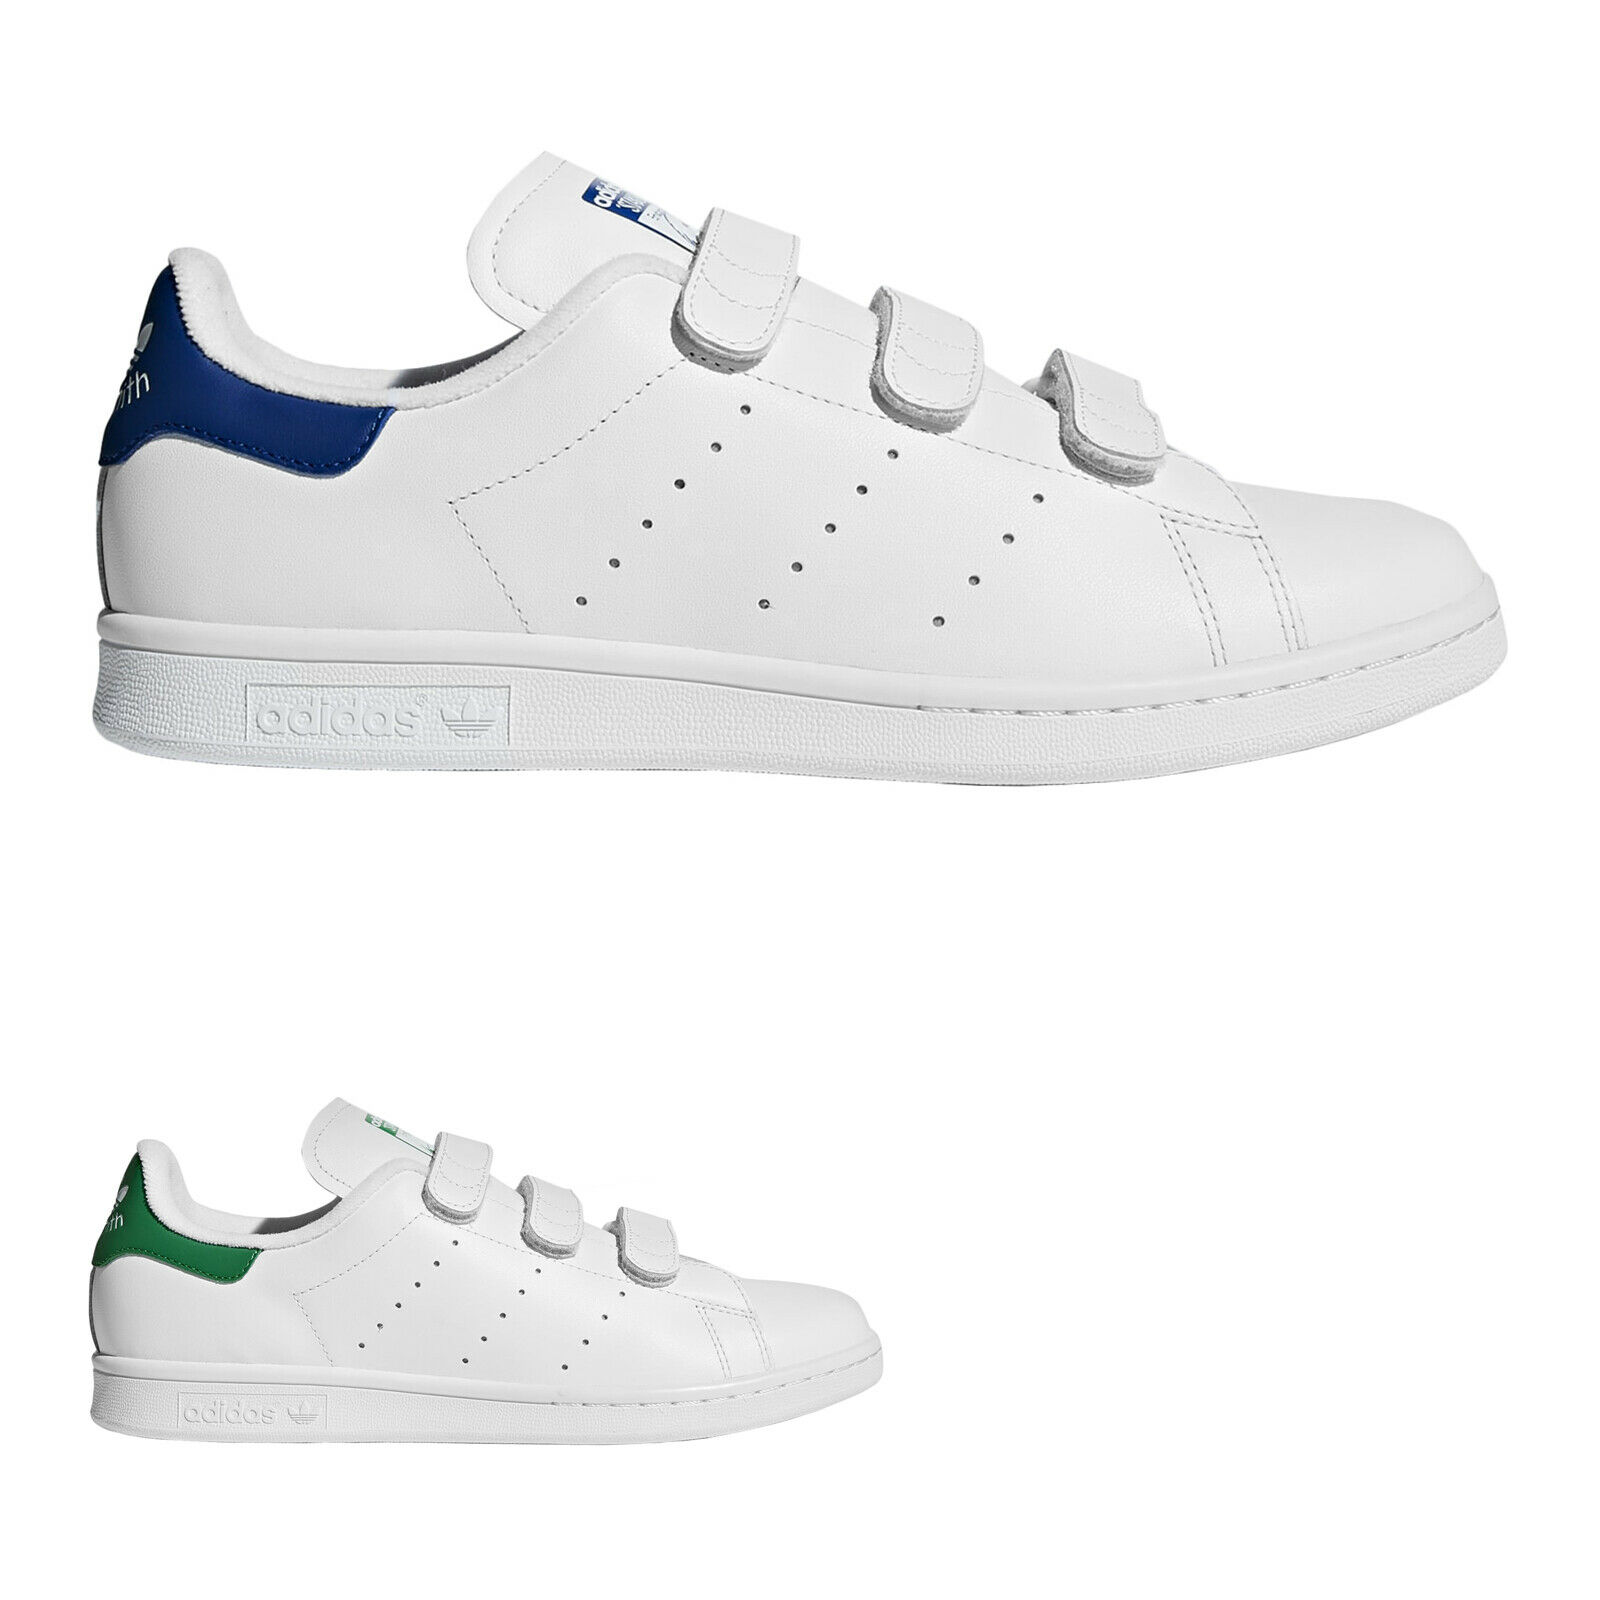 53abe61c4 Adidas Stan Smith CF Leather Leather Leather Classic Hook-And-Loop Mens  Trainers e492be